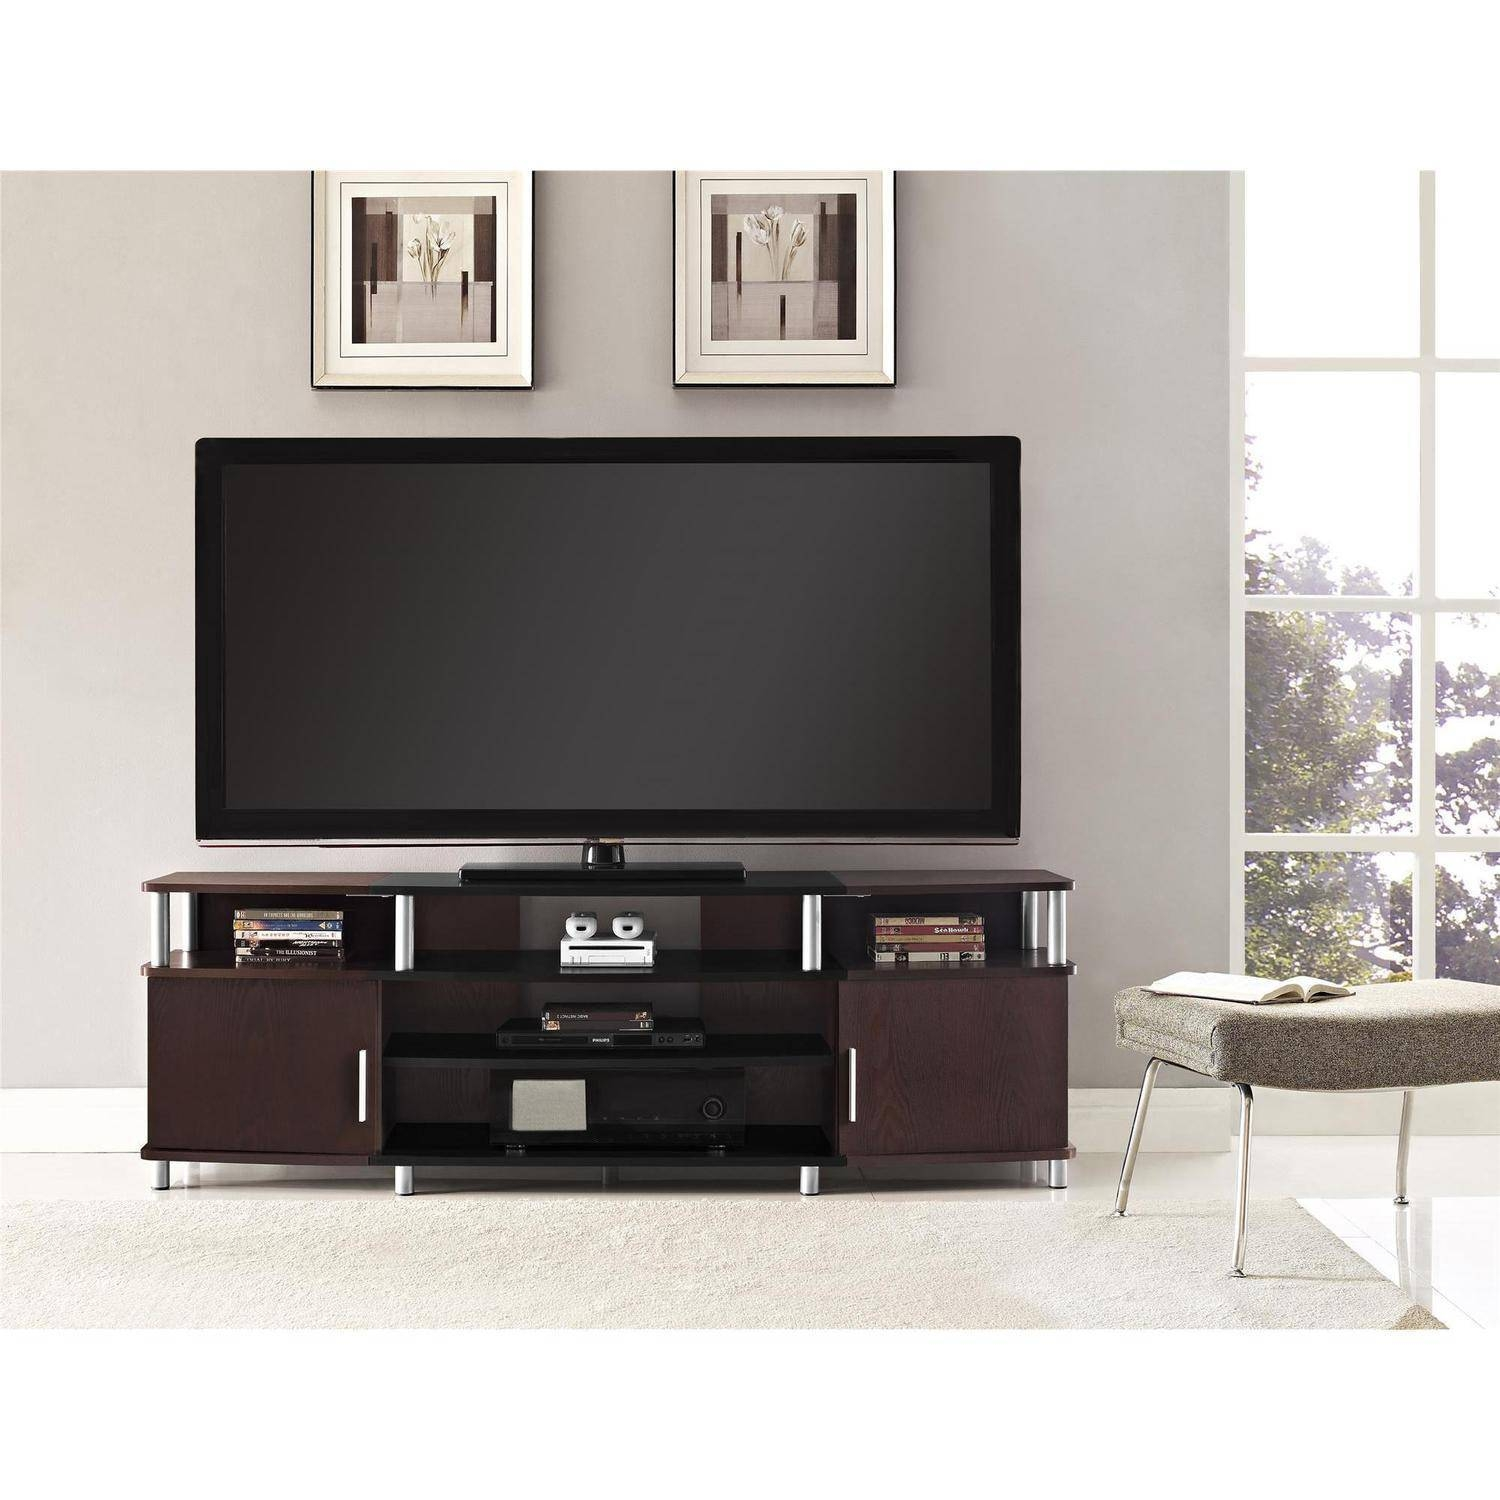 "Carson Tv Stand For Tvs Up To 70"" Wide, Cherry - Walmart inside Dark Tv Stands (Image 3 of 15)"